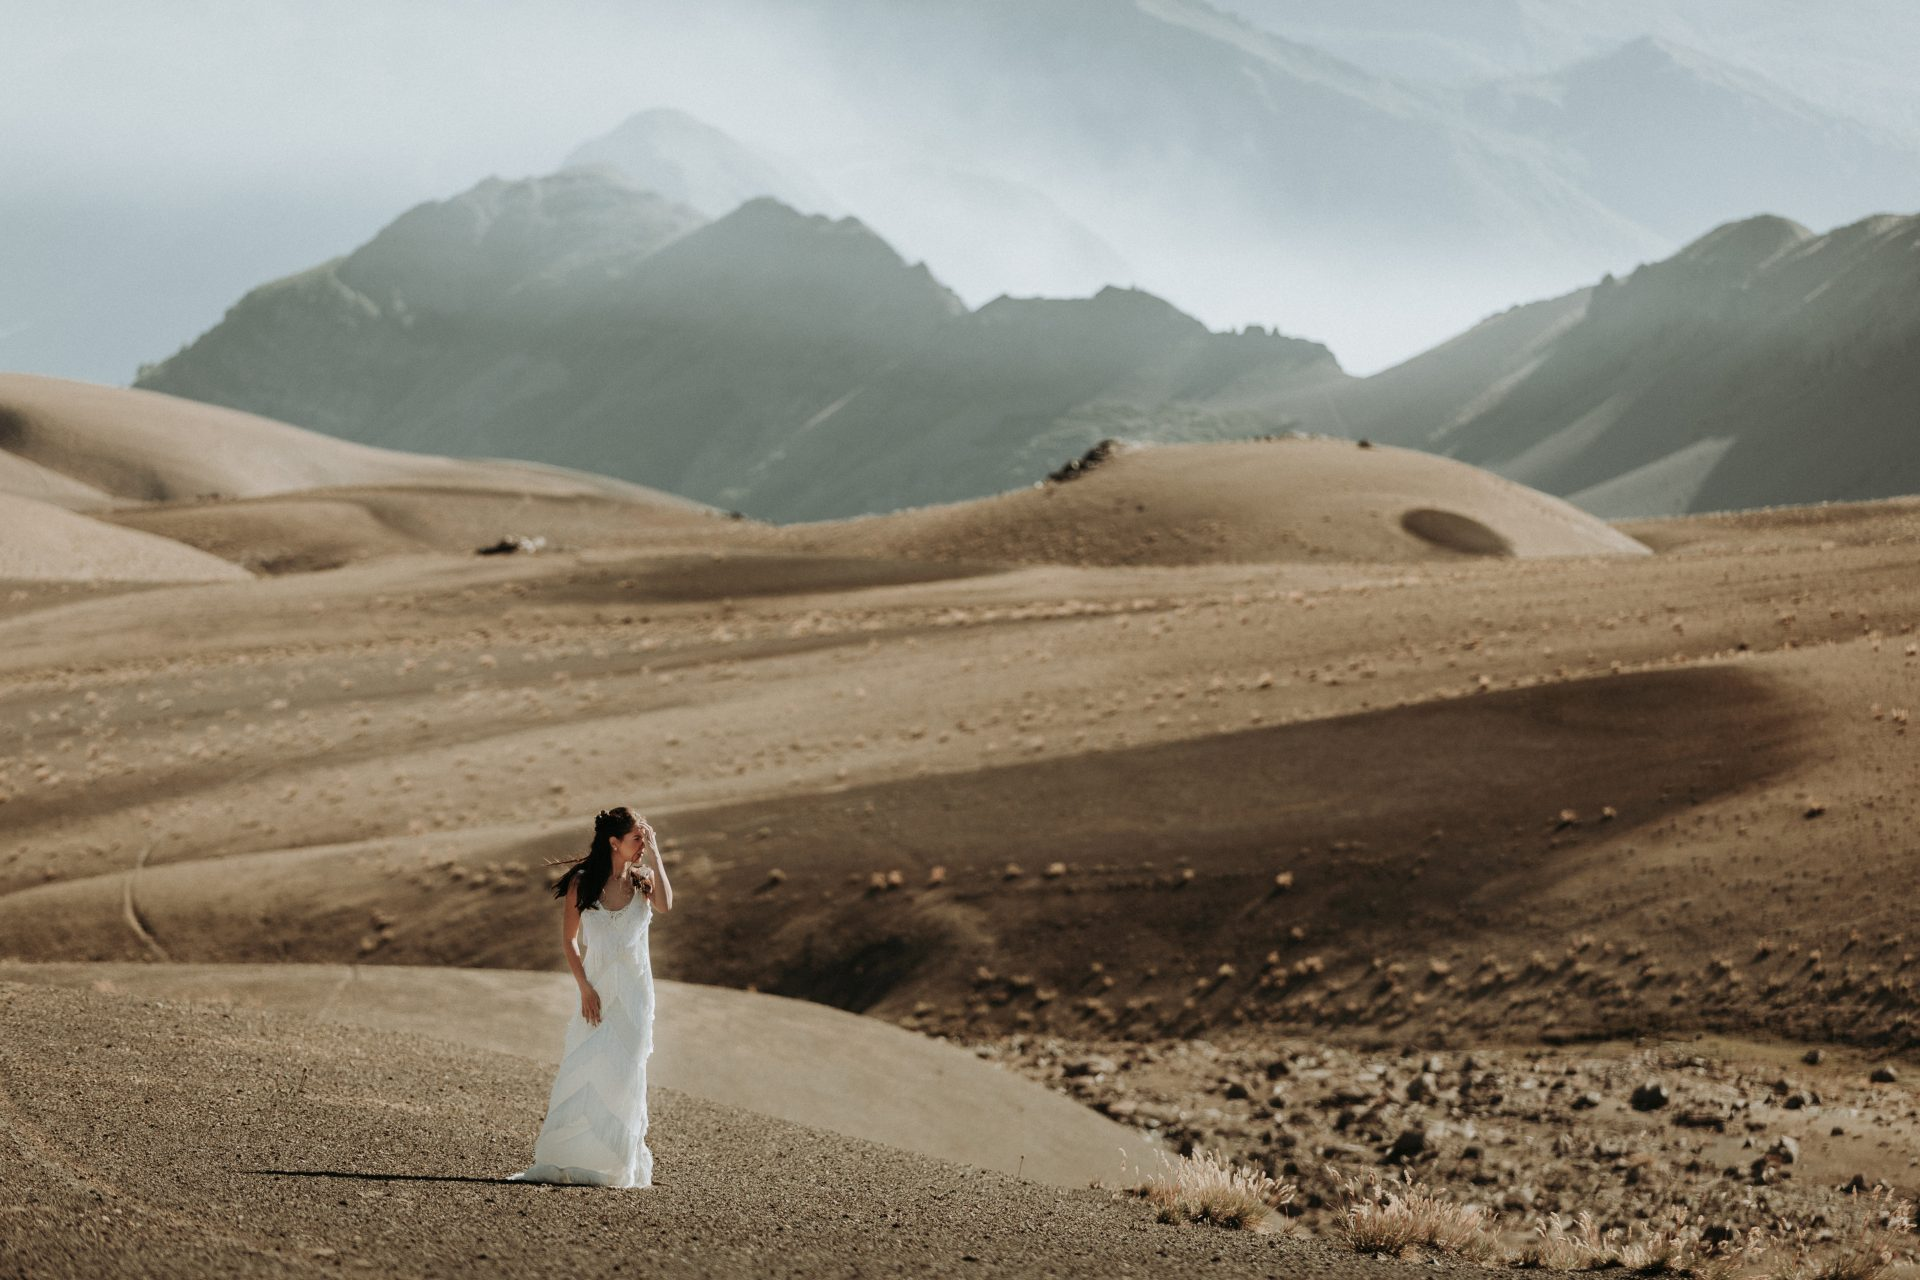 hiking adventure wedding in Chile - bride on mountain plateau